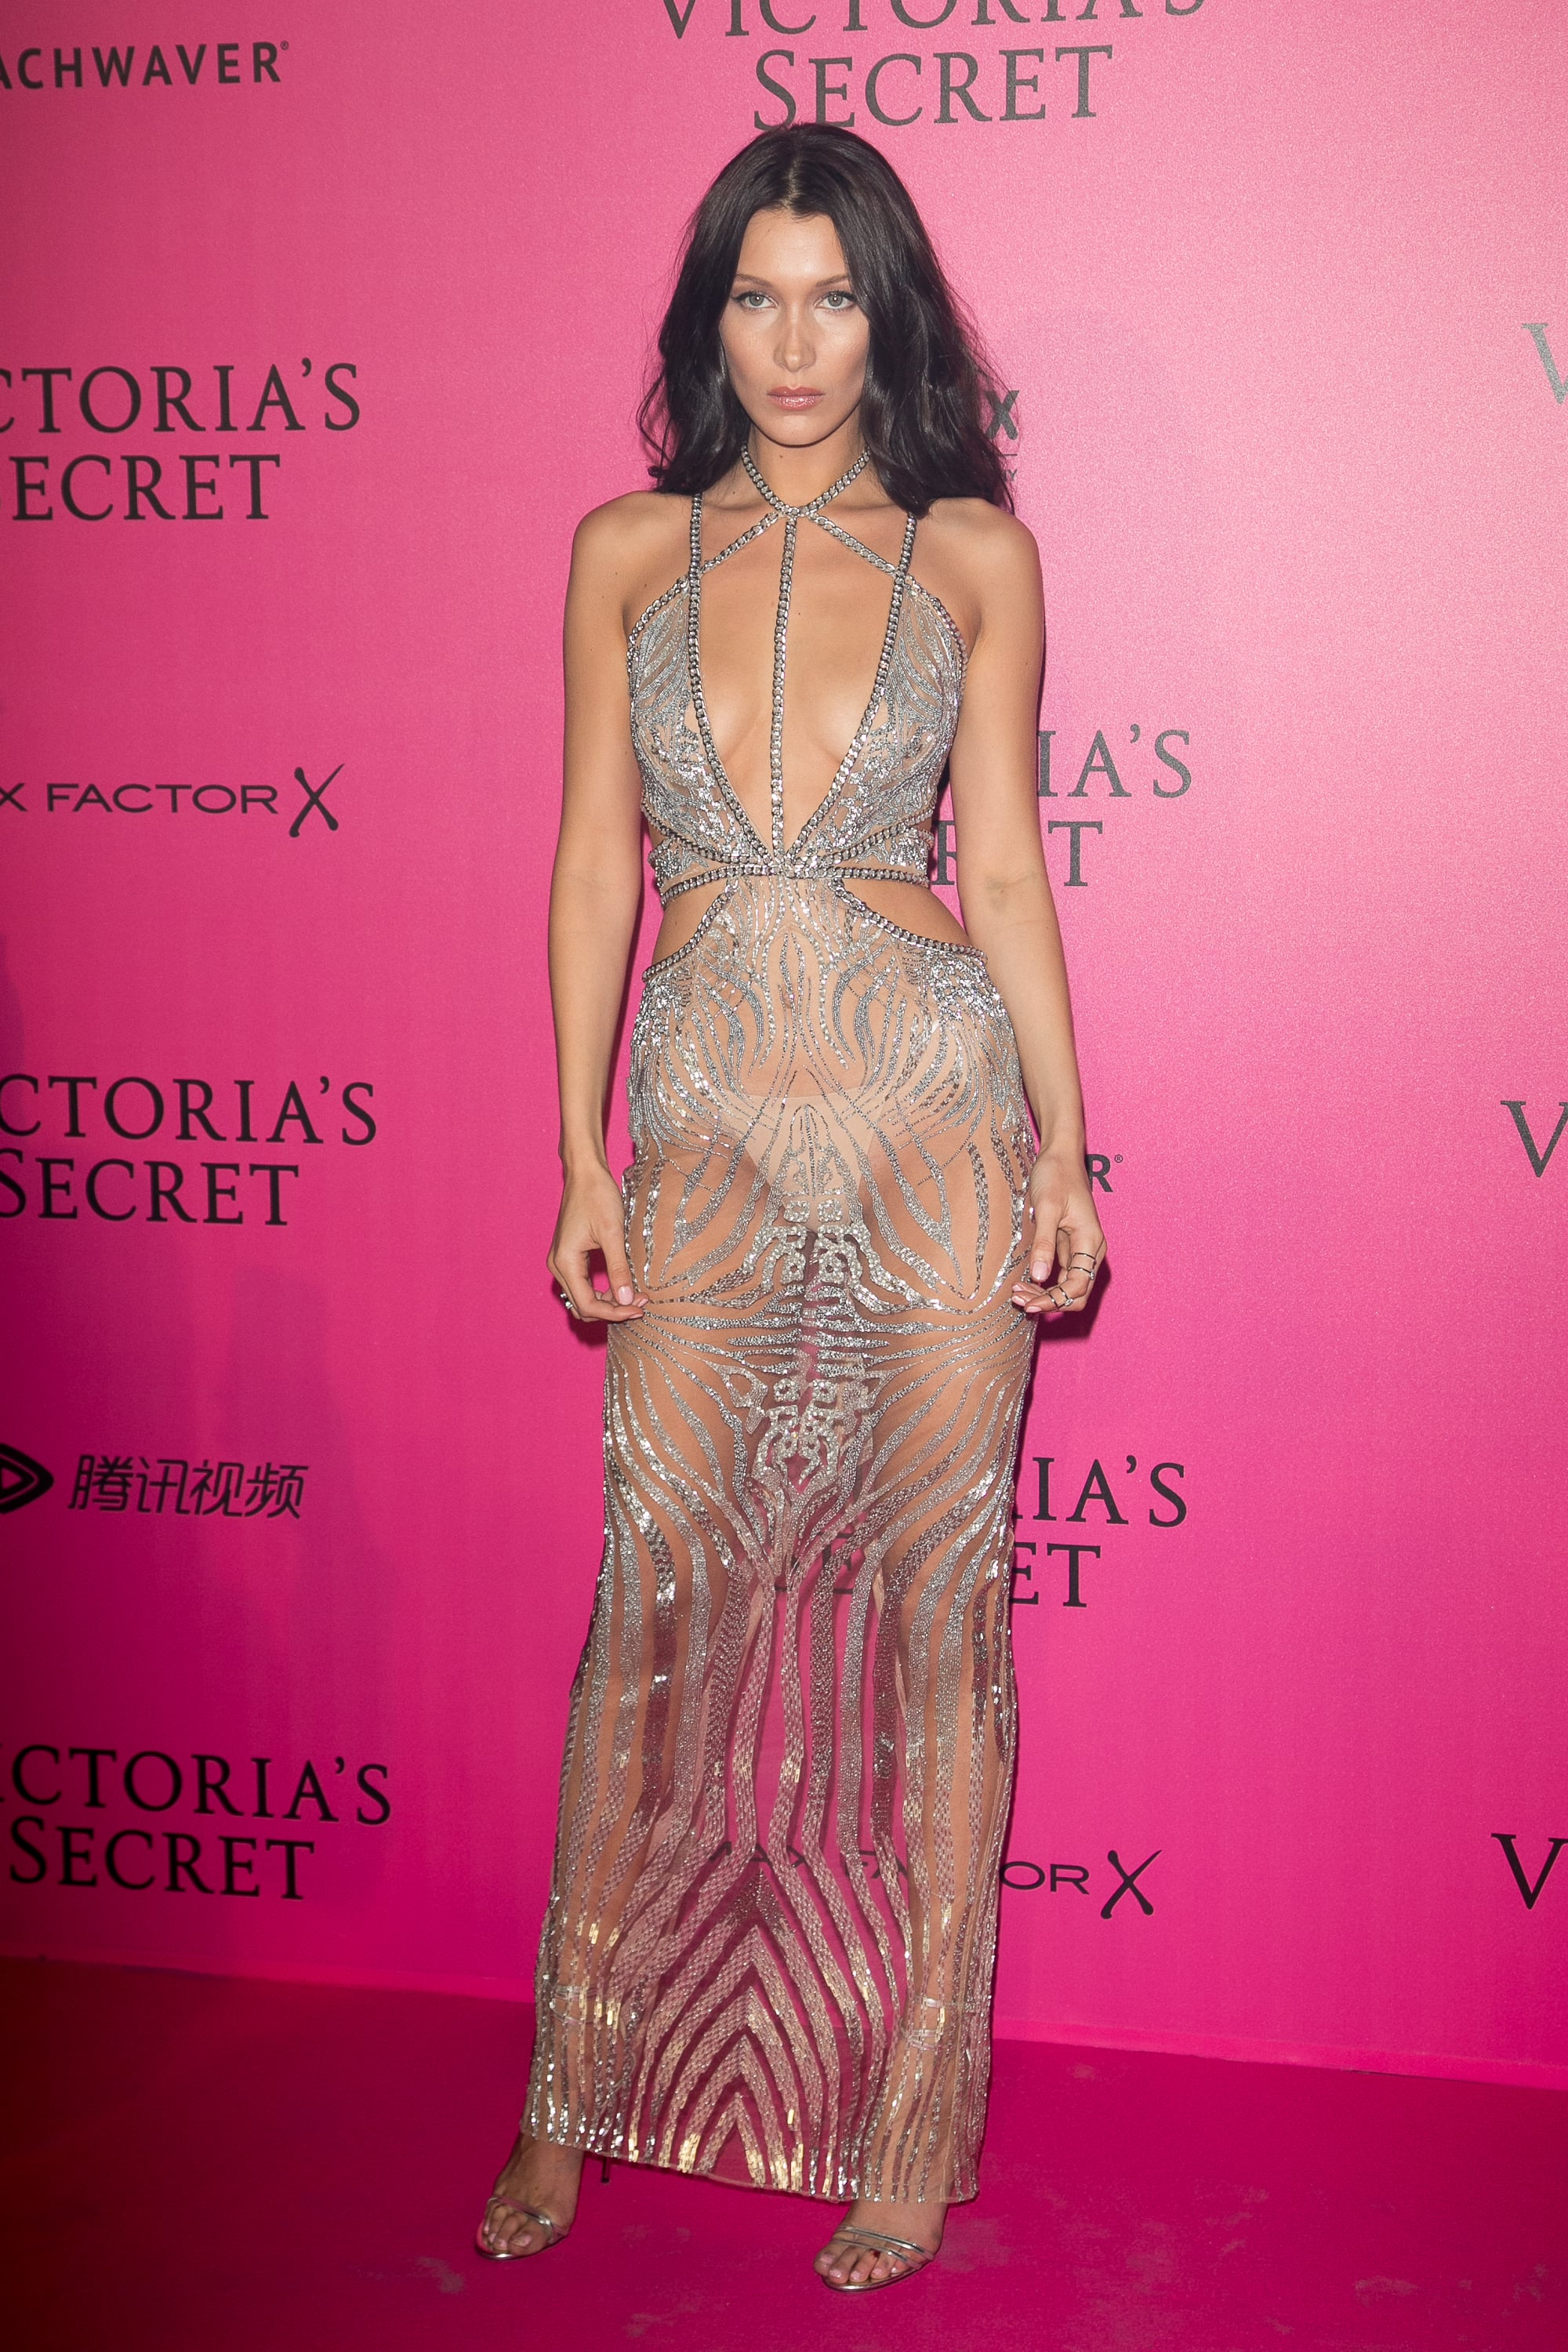 PARIS, FRANCE - NOVEMBER 30: Bella Hadid attends '2016 Victoria's Secret Fashion Show' after show photocall at Le Grand Palais on November 30, 2016 in Paris, France.  (Photo by Marc Piasecki/WireImage)